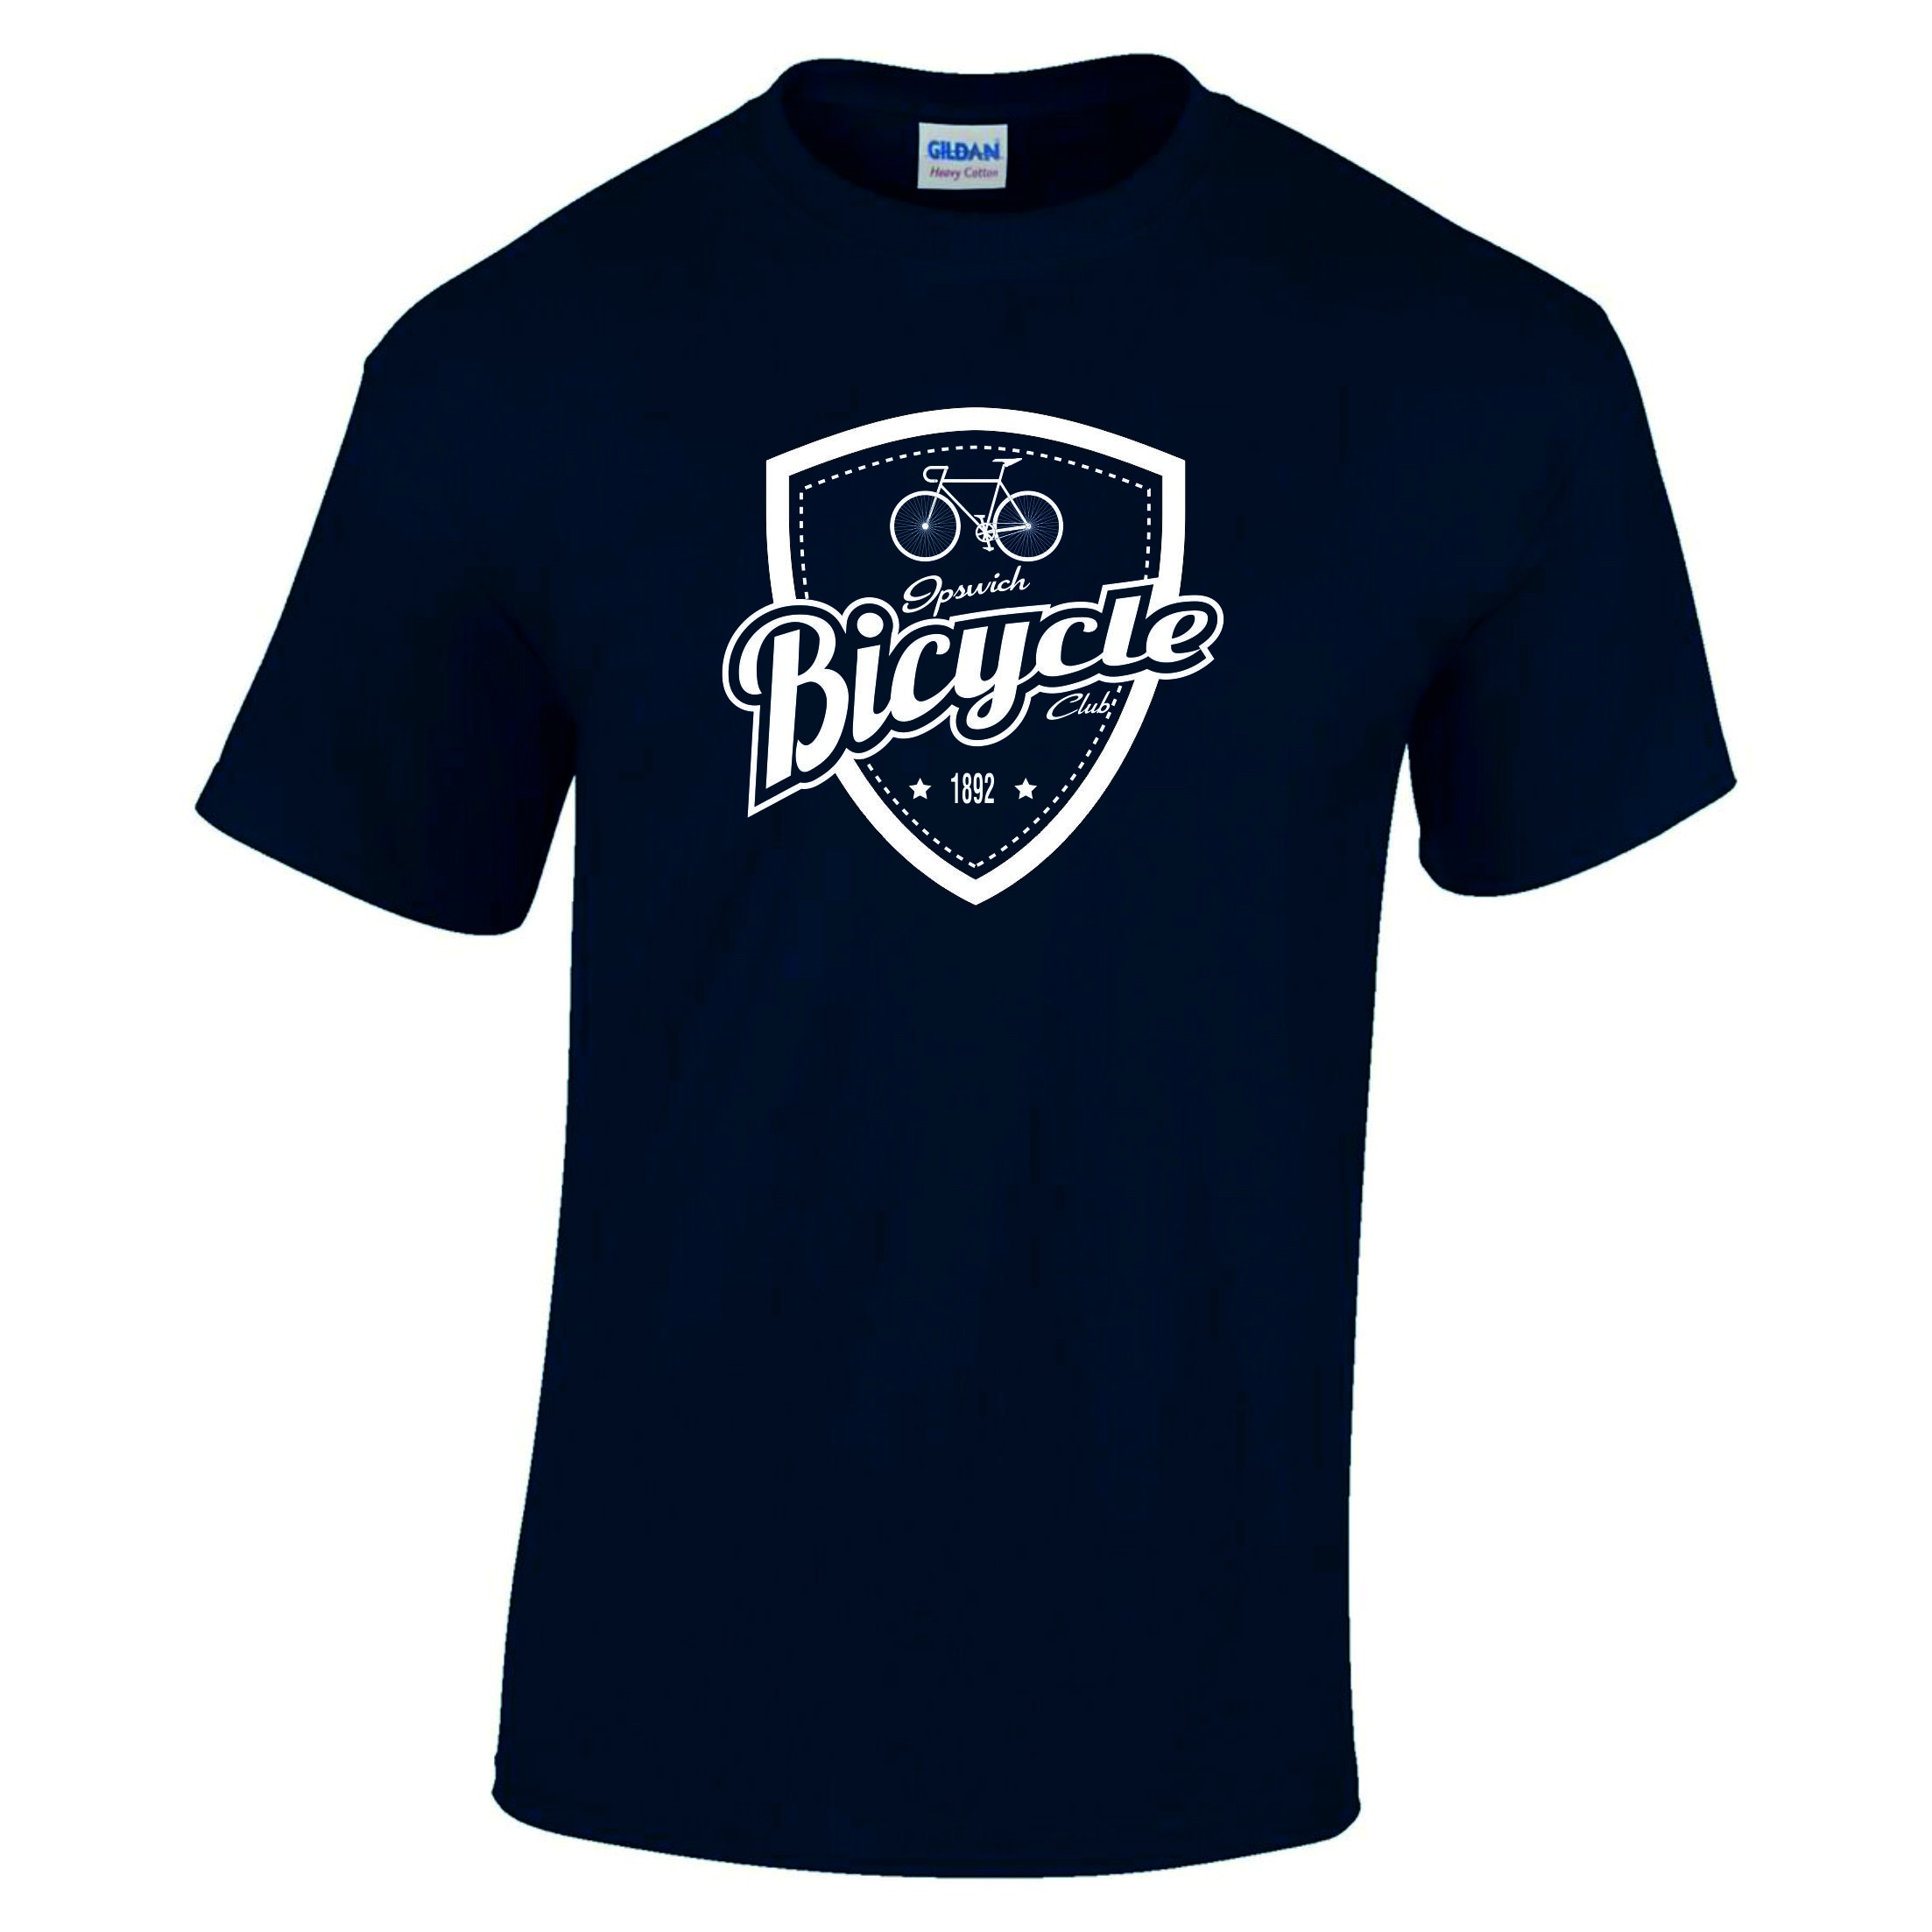 Ipswich Bicycle Club Junior Crew Neck Tee with Shield Print